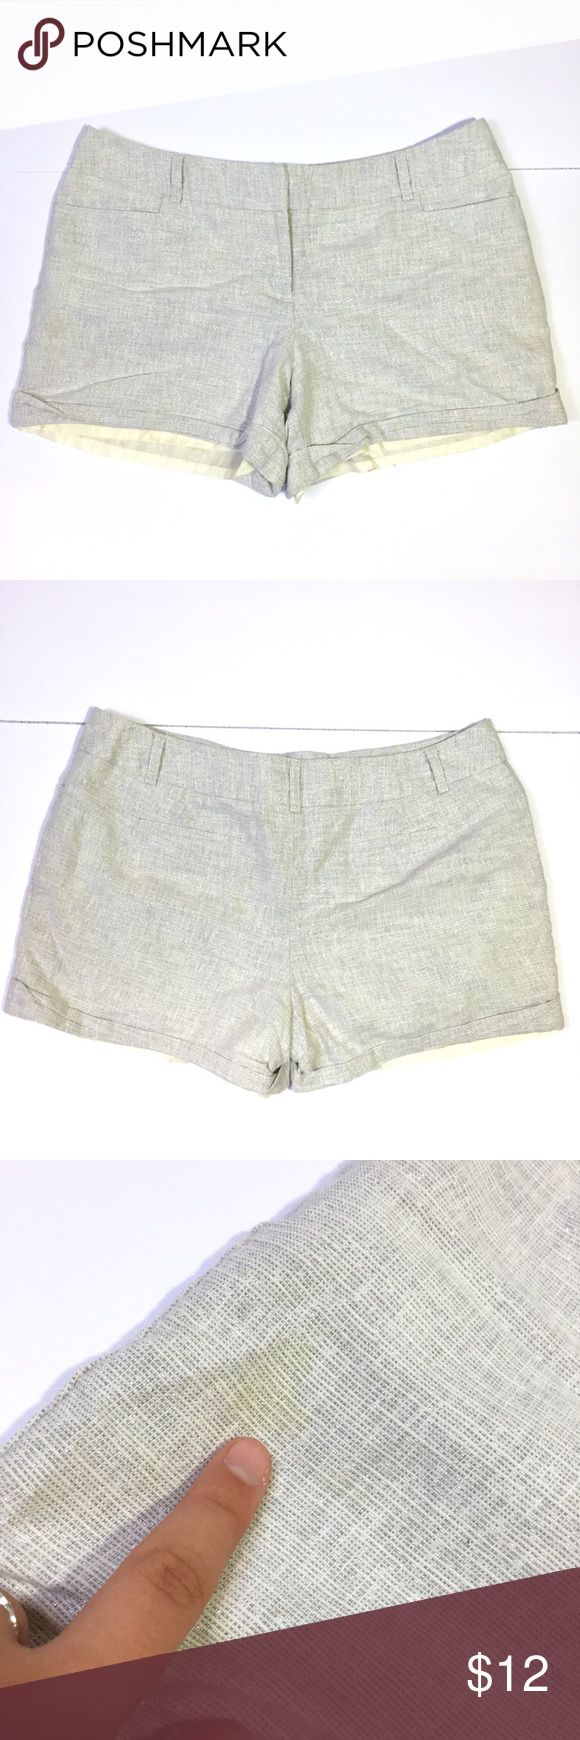 "Sparkly gray shorts - Size: 18 - Material: shell is 51% cotton, 27% linen, 12% polyester, 6% rayon, 4% other. Lining is 100% polyester - Condition: stains shown in photos. First is on the front, second is on the bottom hem of the lining, and third is on the back - Color: sparkly light gray - Pockets: fake pockets - Lined: yes - Closure: zipper and 2 metal clasps - Pair with: a white tee and sandals for a preppy modern look  *Measurements: Waist: 19.5"" flat Hips: 21"" flat Length: 14.5"" Rise…"